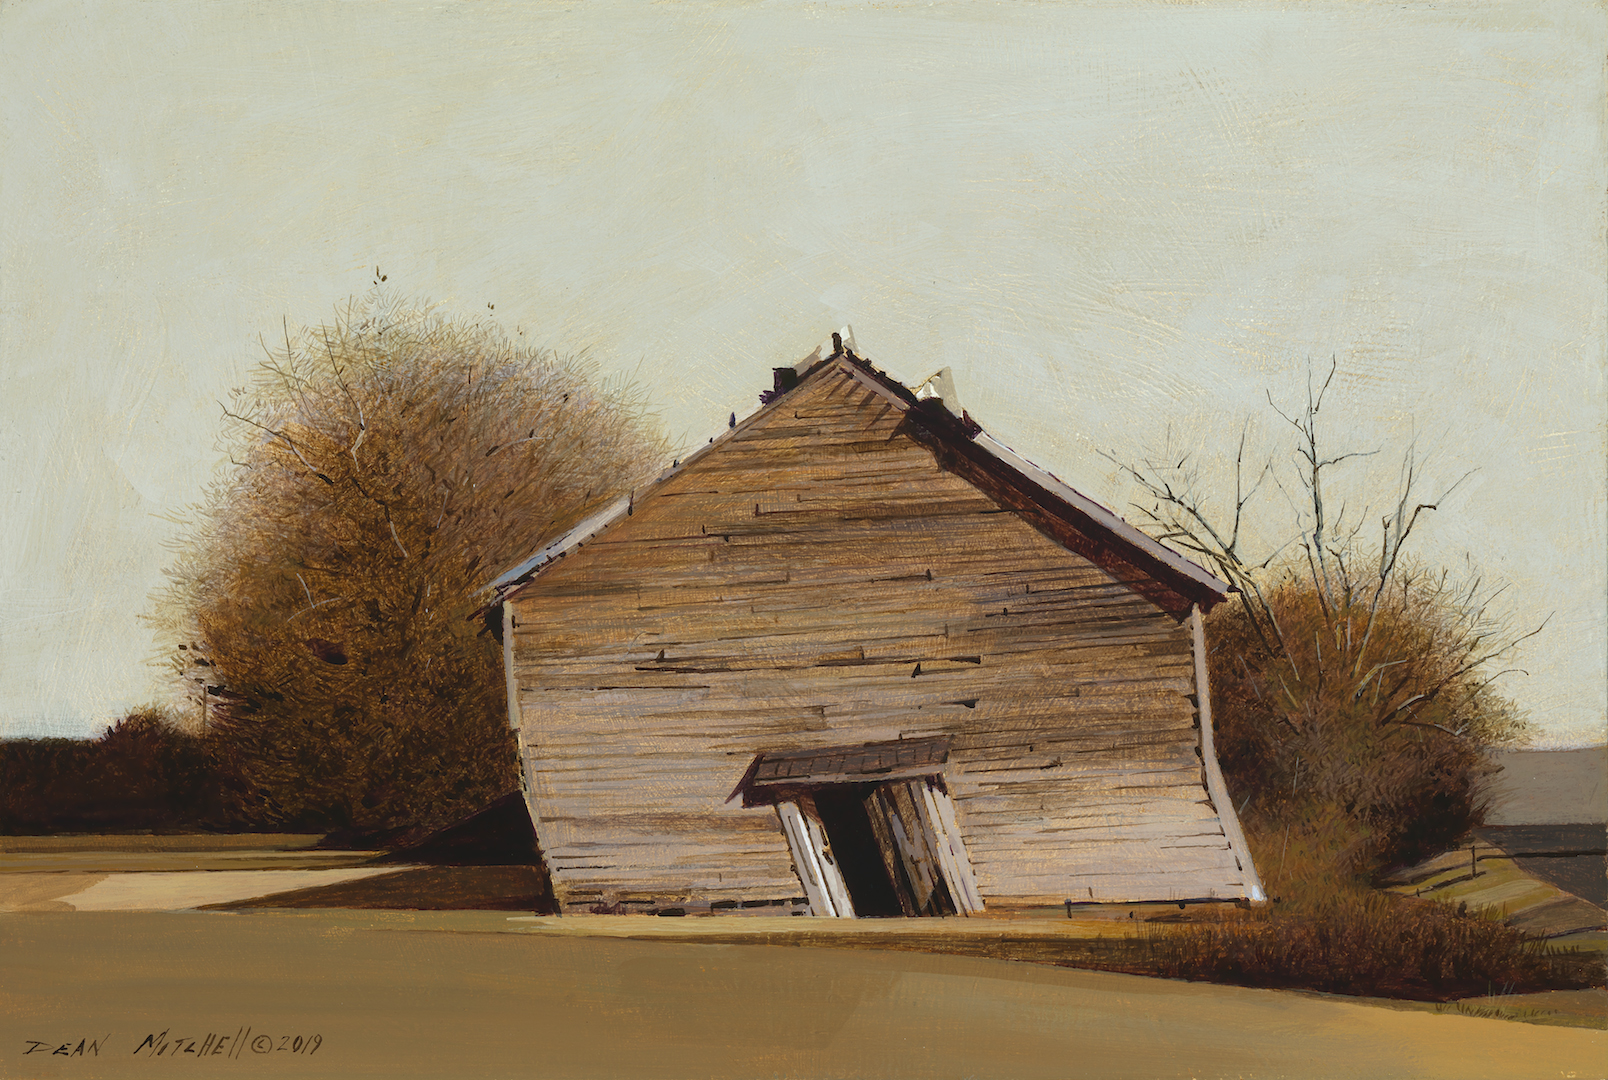 Dean Mitchell - Tilted Tobacco Barn